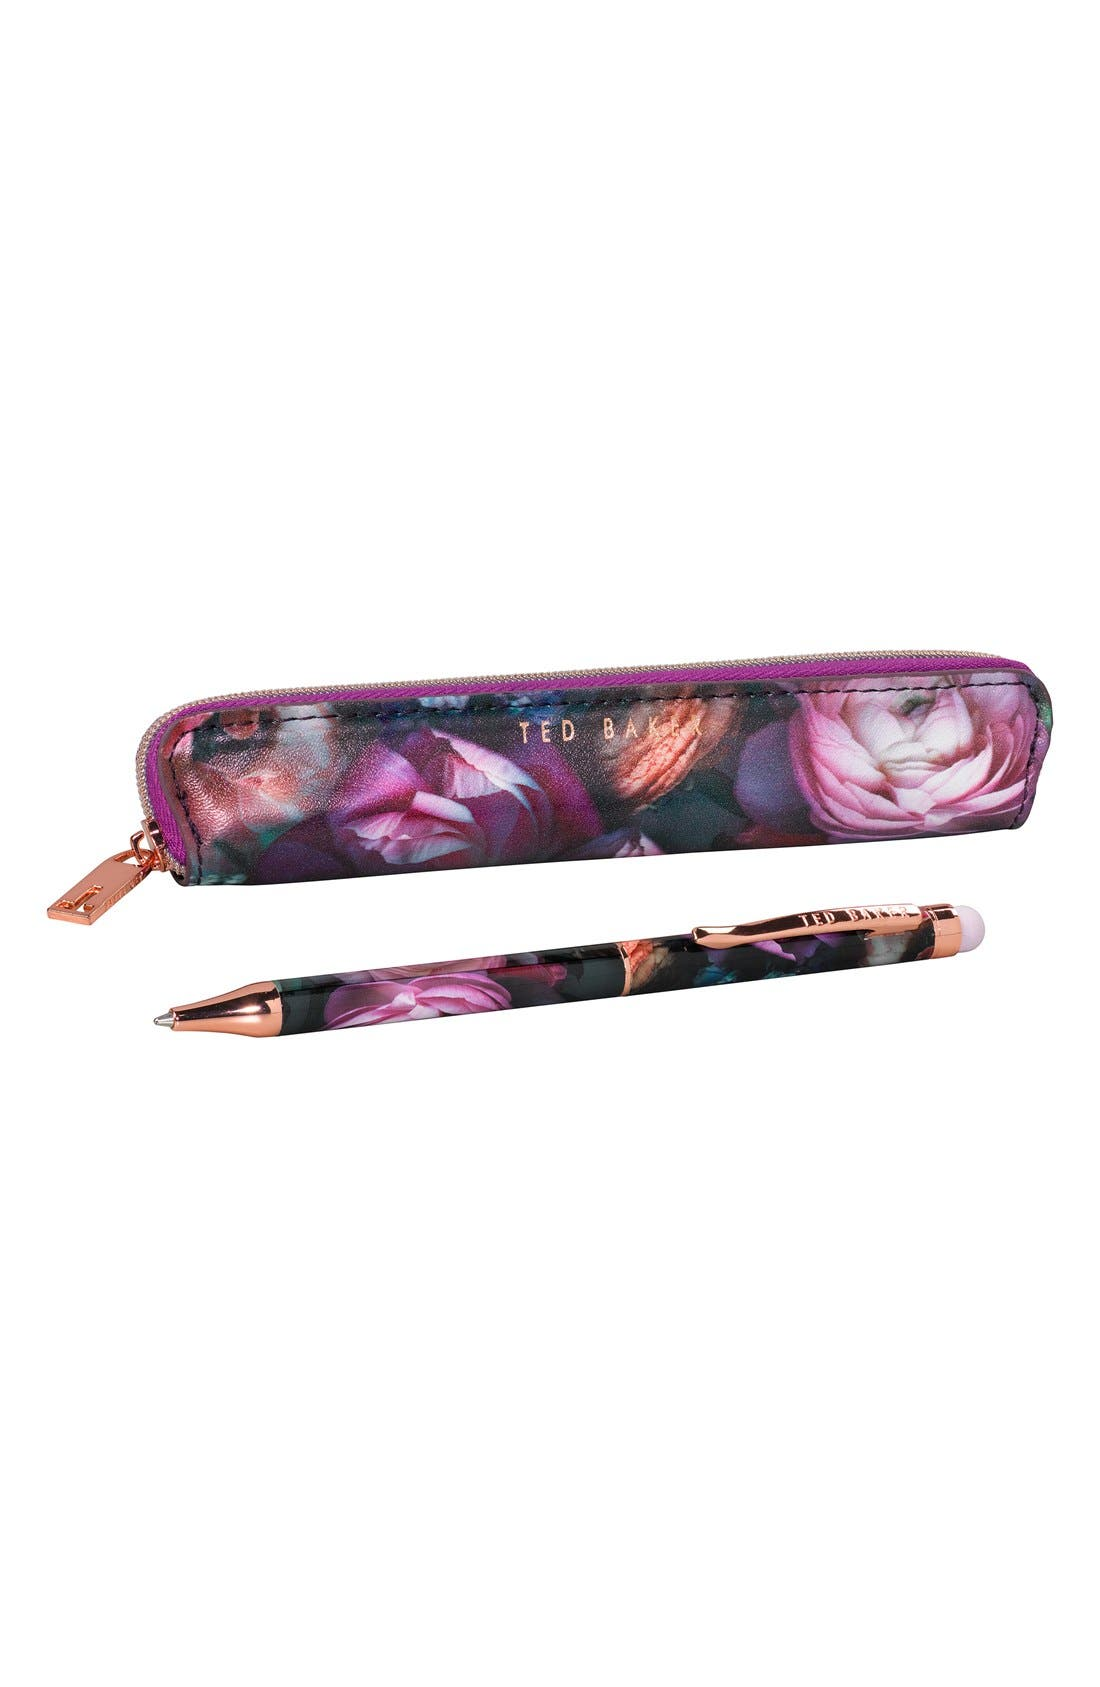 Wild and Wolf x Ted Baker London Touchscreen Stylus & Stylus Case,                             Alternate thumbnail 2, color,                             500